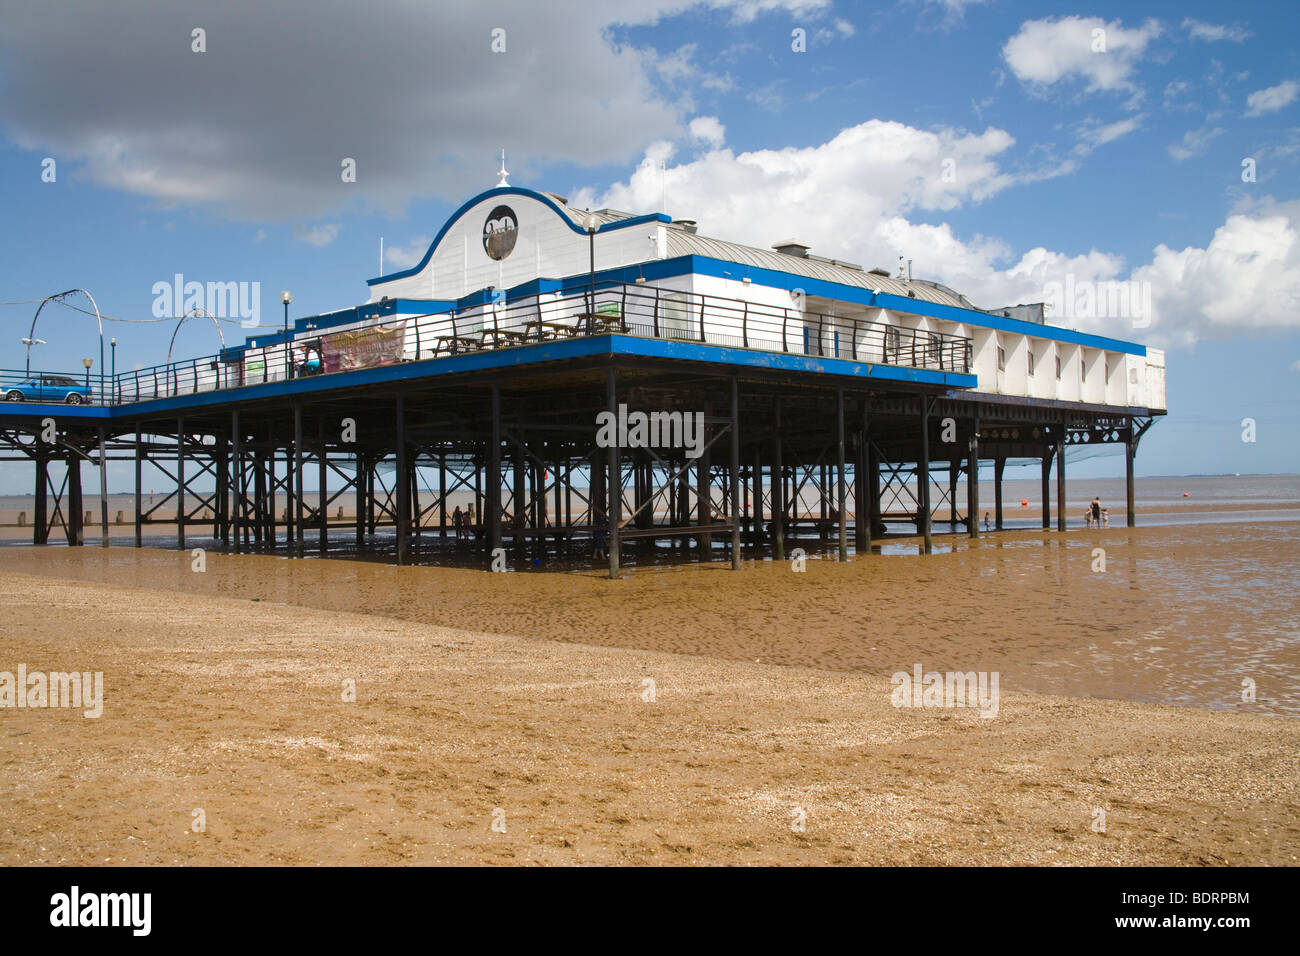 Cleethorpes pier on the Lincolnshire coast - Stock Image